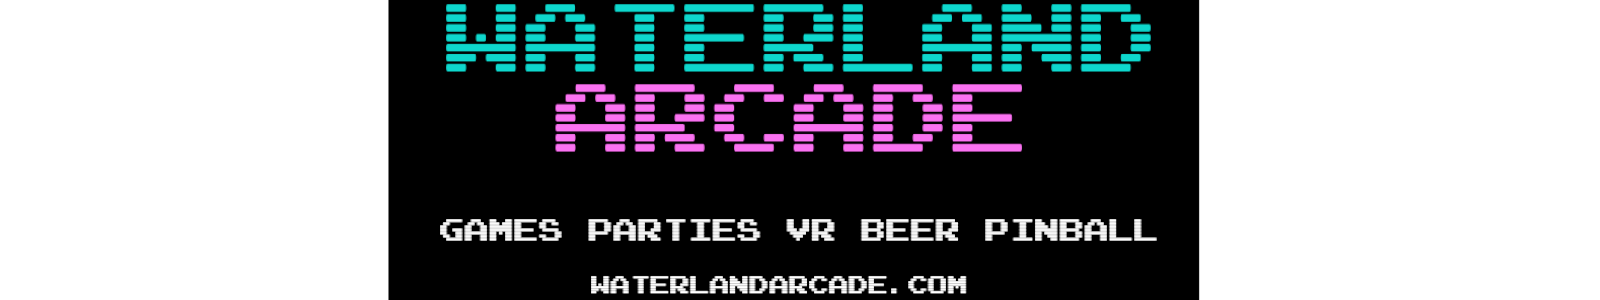 Waterland Arcade - Business Sponsor of The DJ Sessions